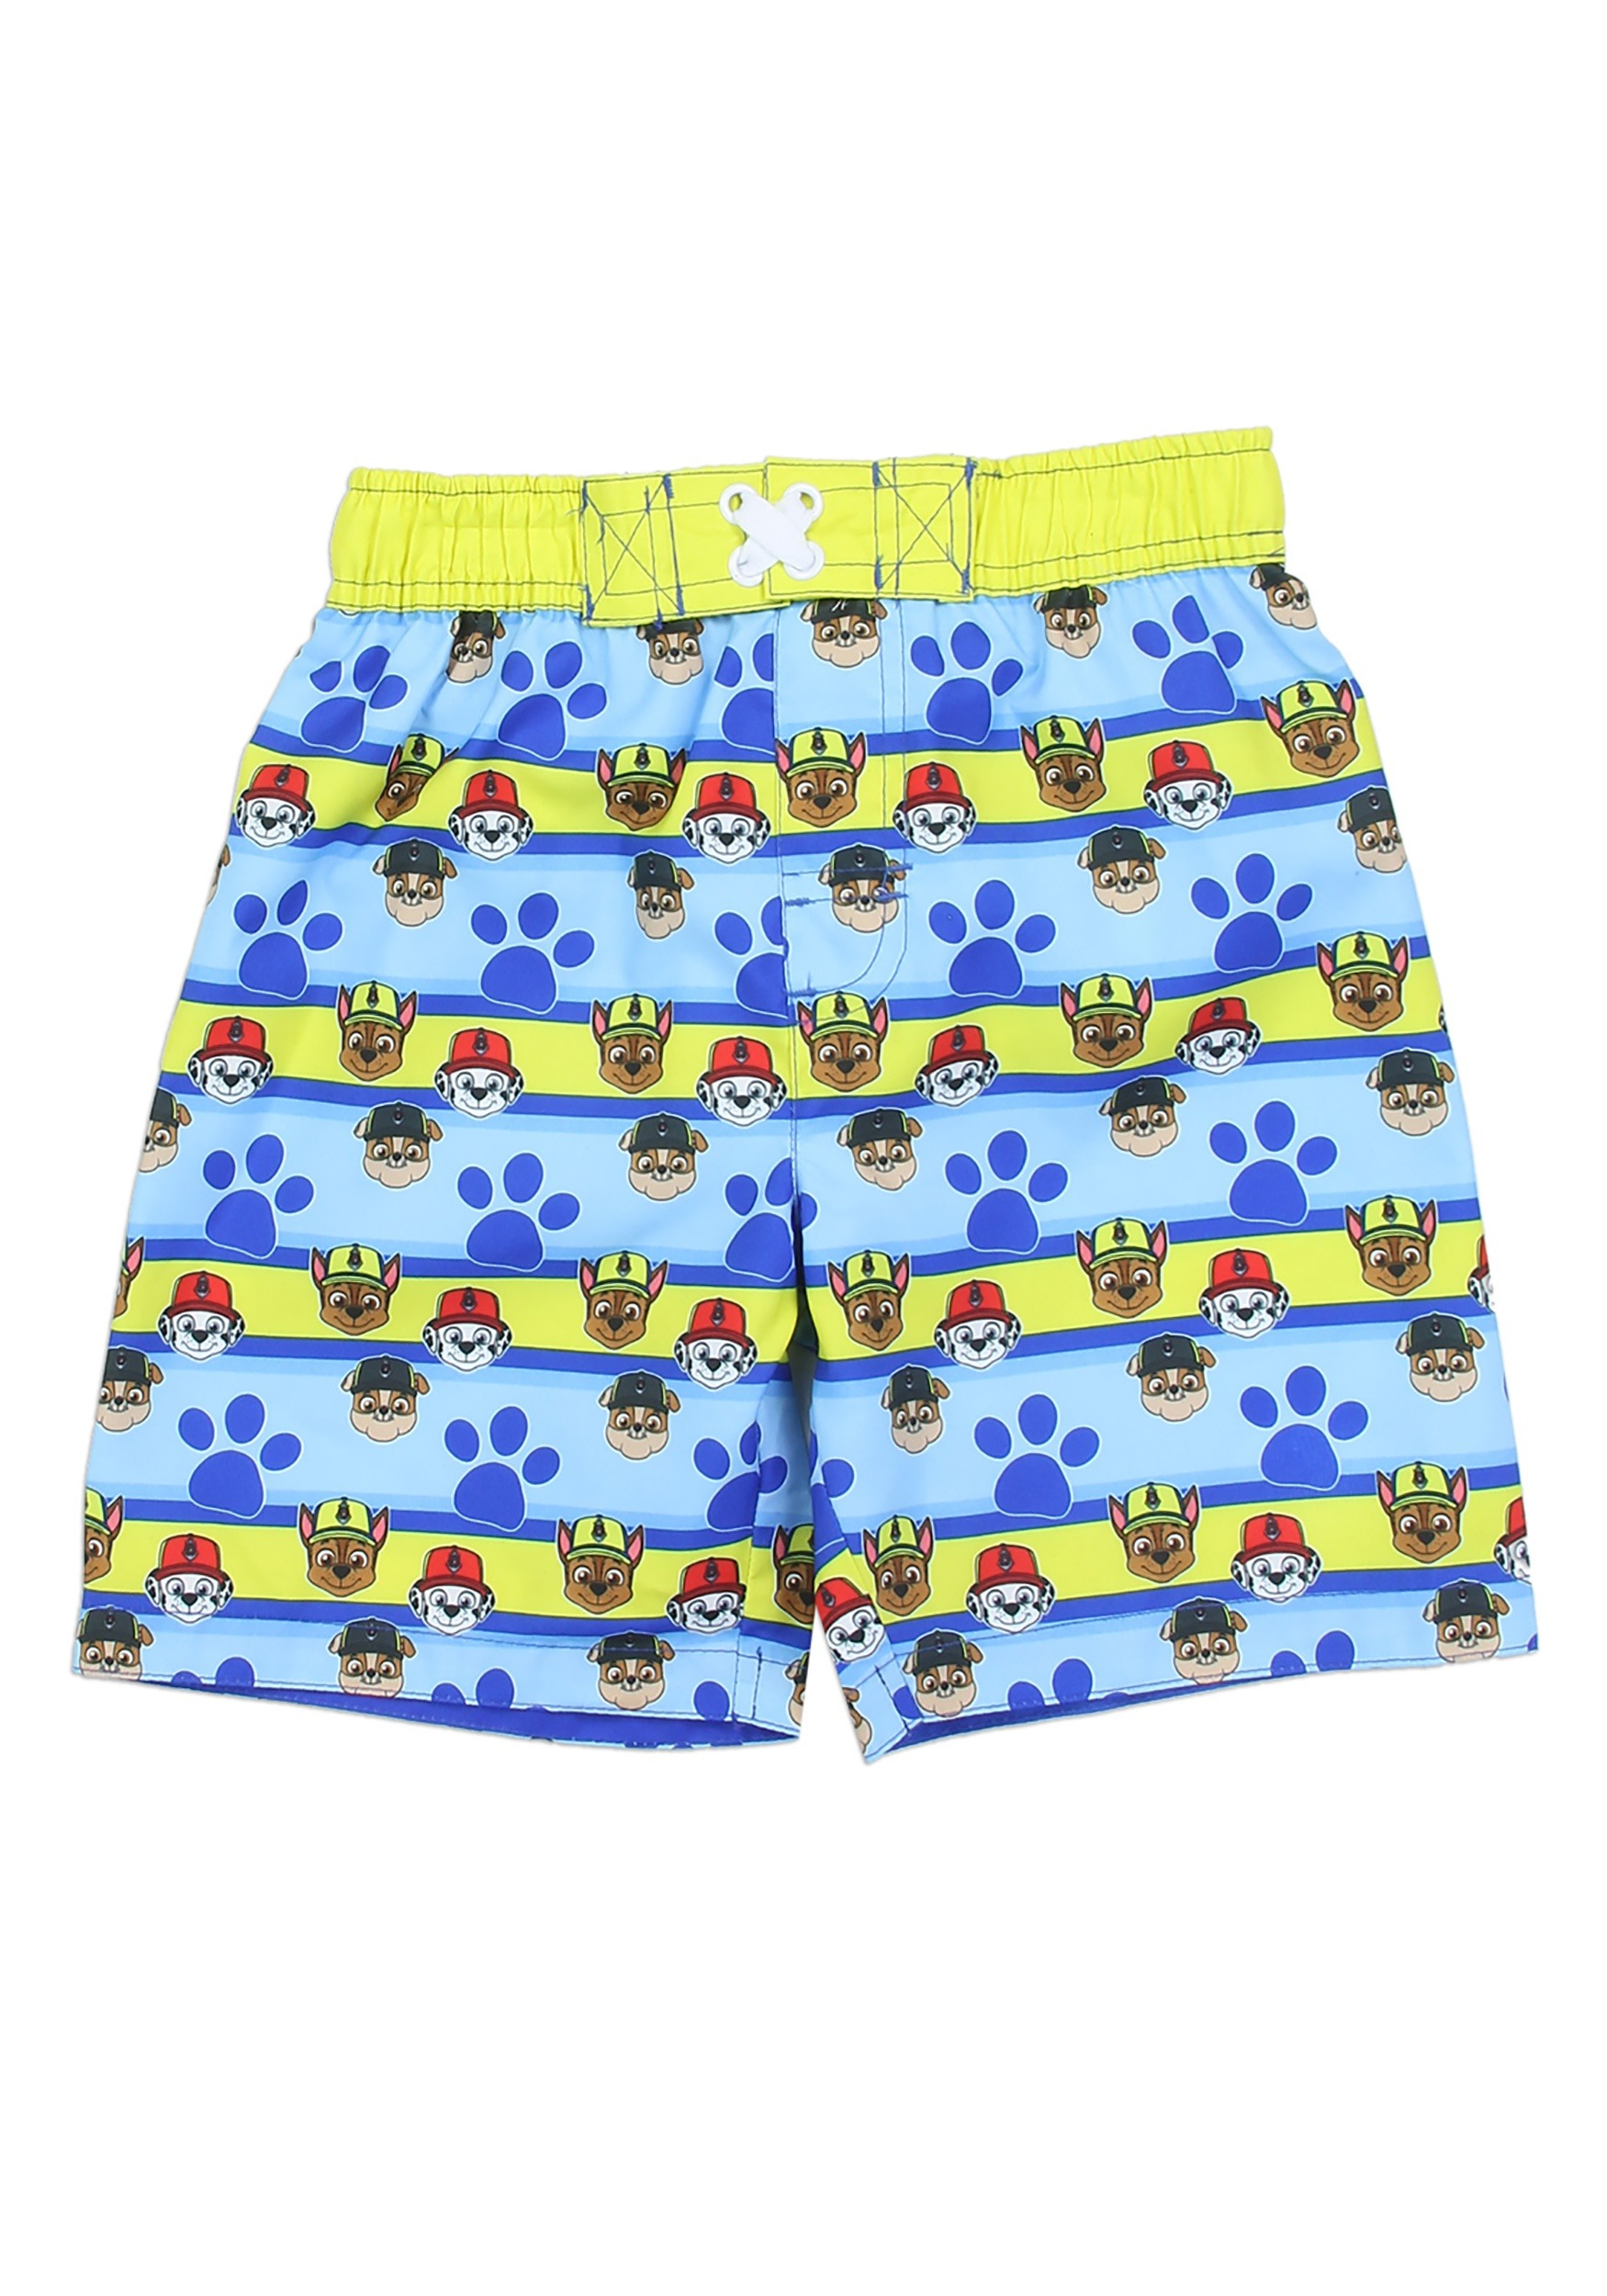 78d456337e2a5 Boys Paw Patrol Toddler Swim Shorts1